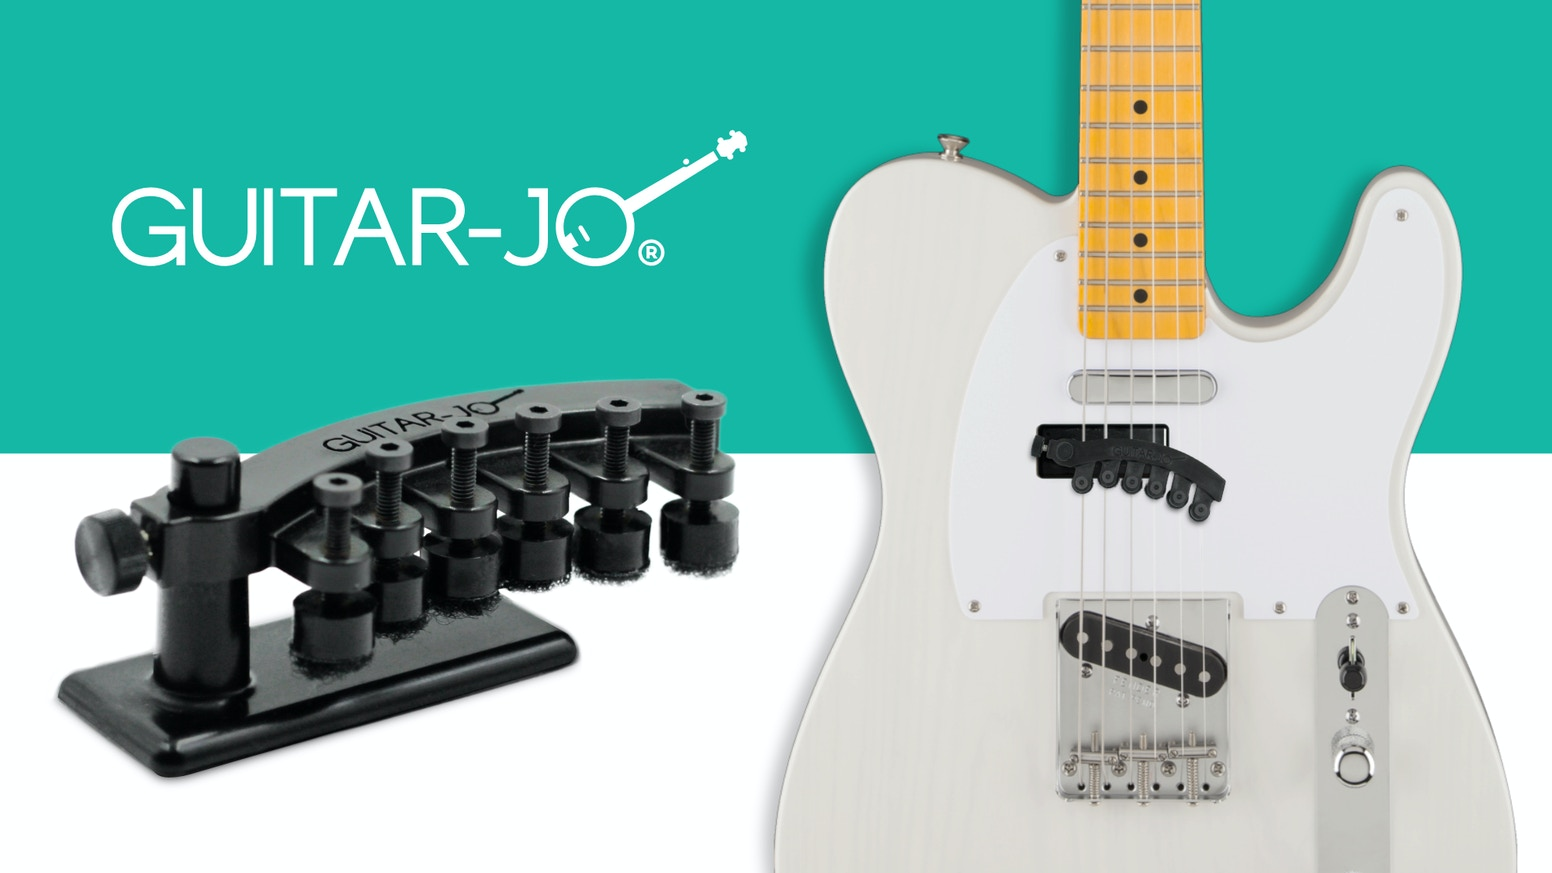 GUITAR-JO 2.0 - Make Your Electric Guitar Sound Like a Banjo